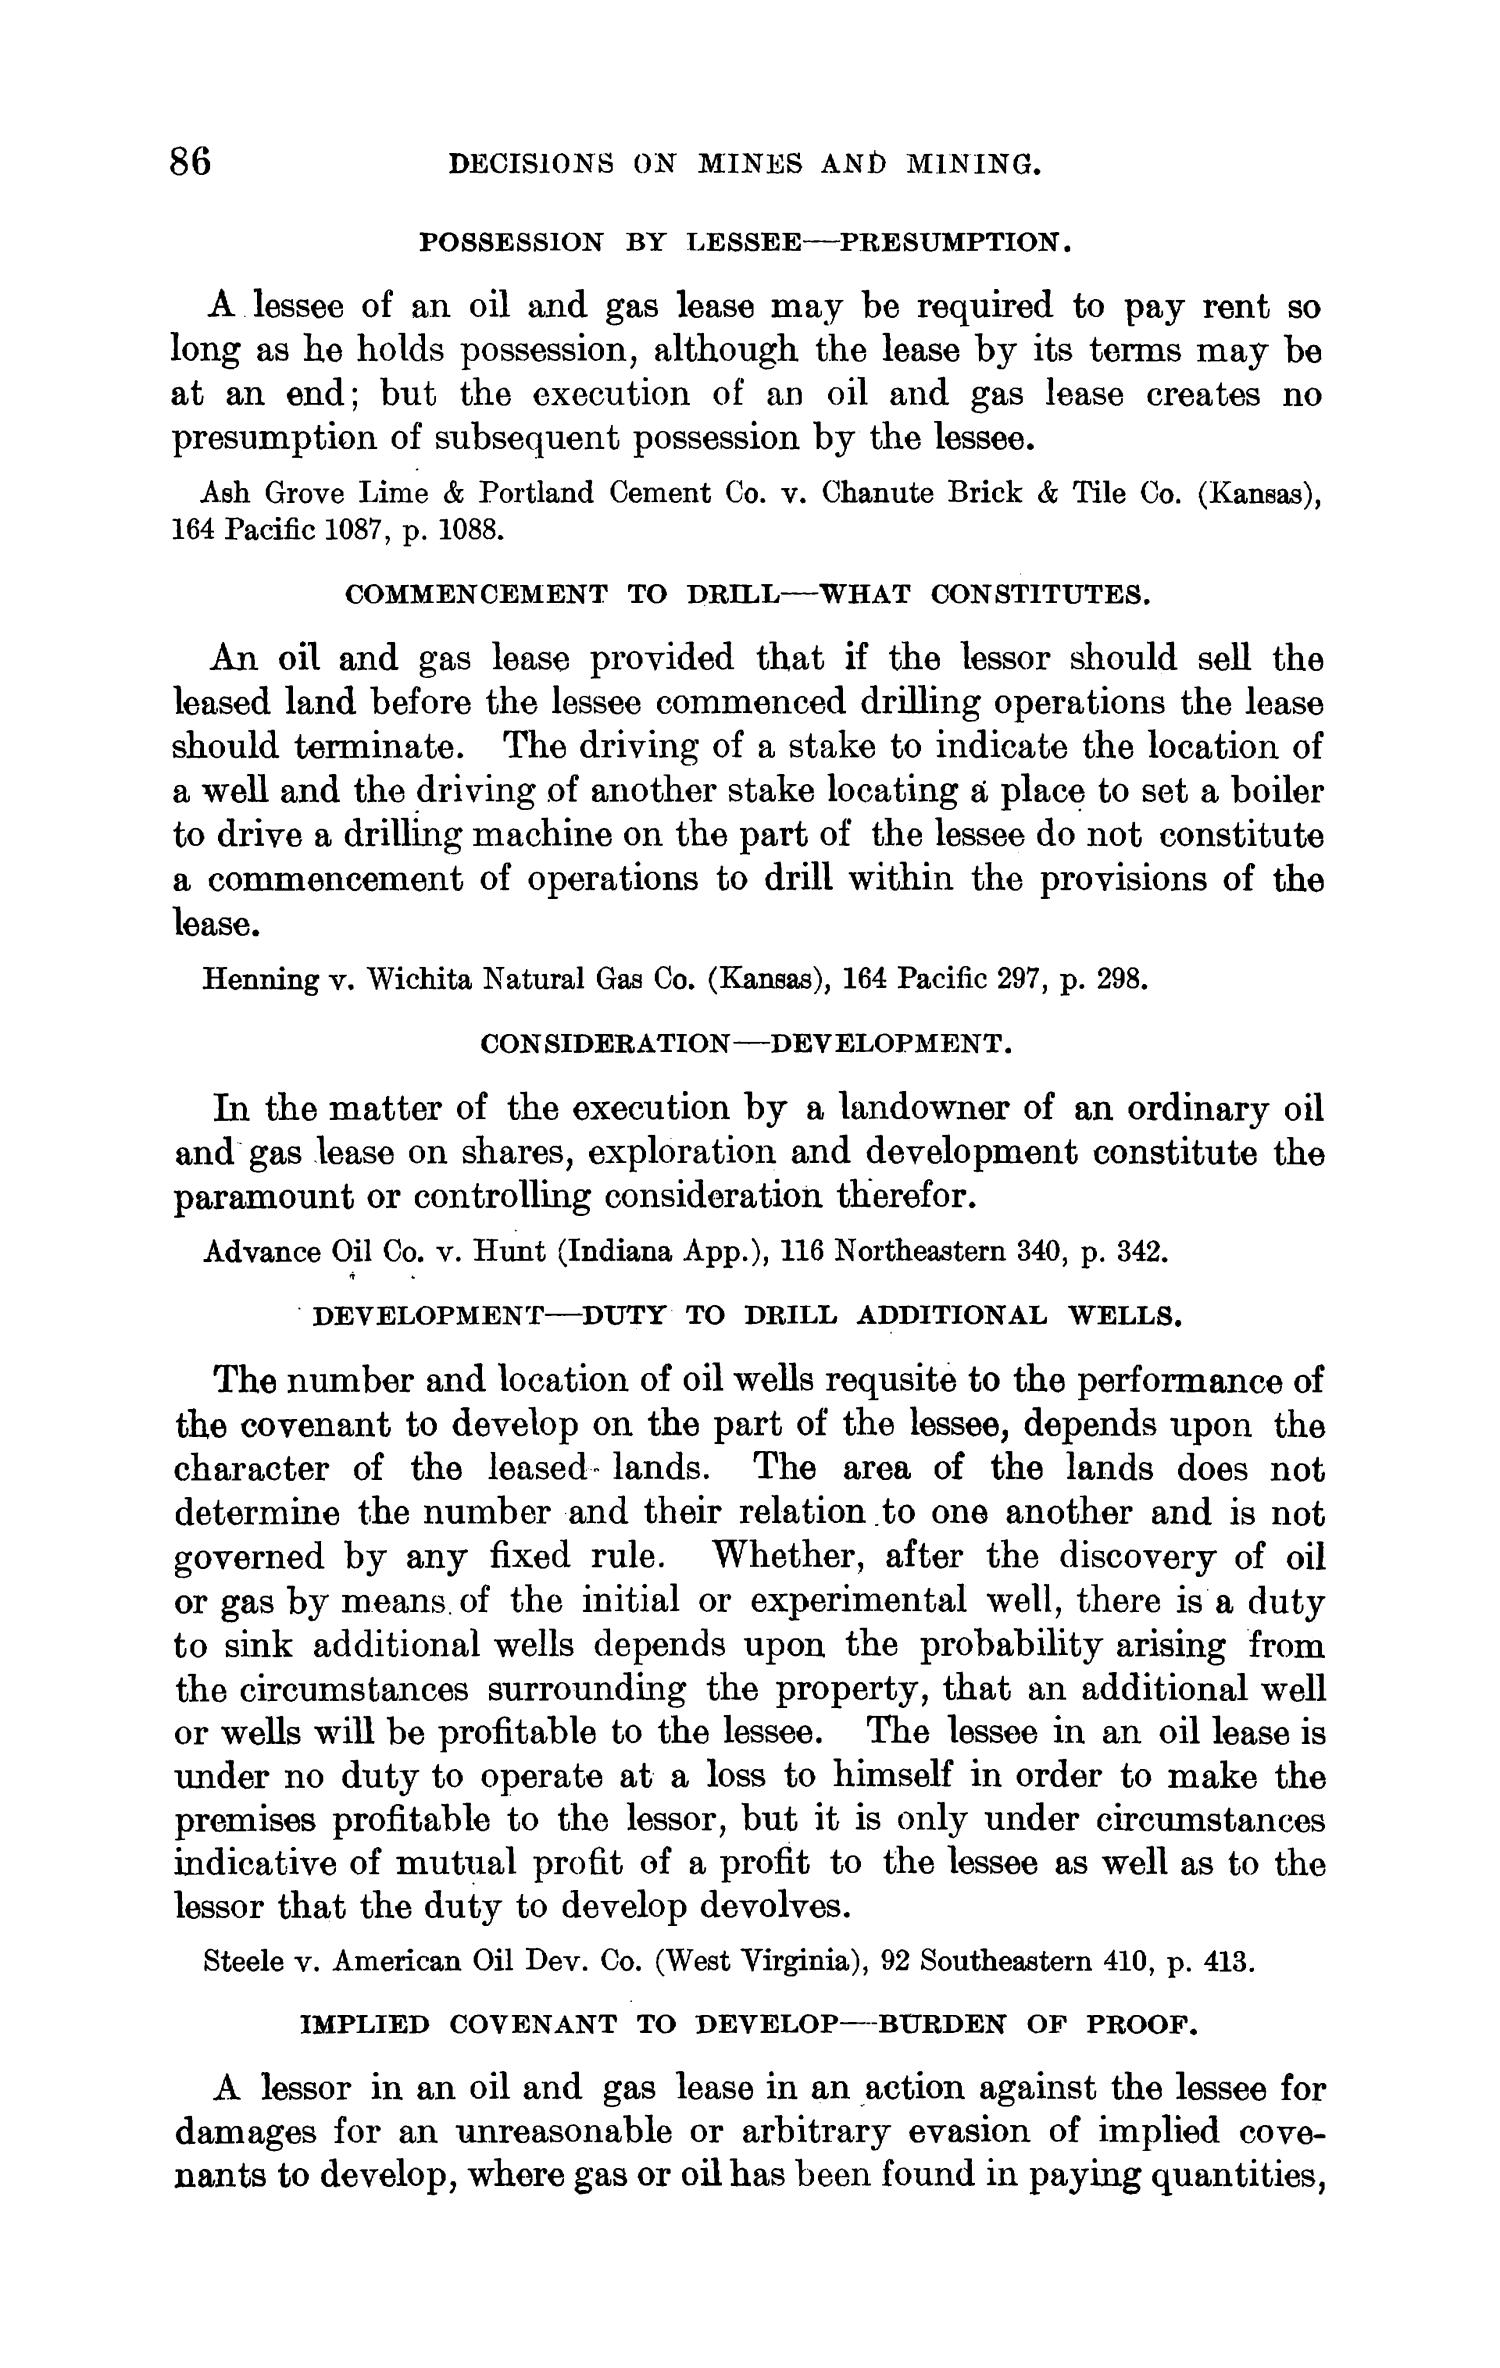 Abstracts of Current Decisions on Mines and Mining: May to August, 1917                                                                                                      86